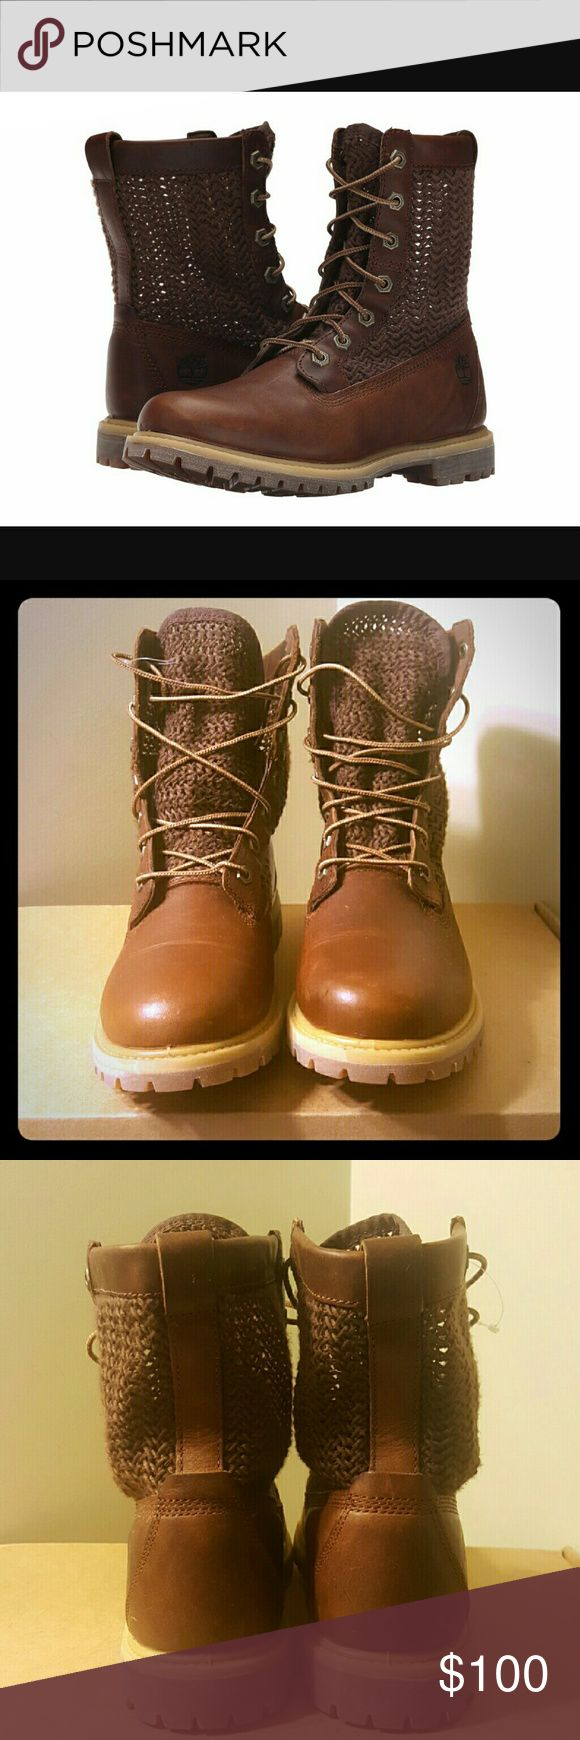 Womens Timberland boots Style: A14A9 brown open weave boots. NWOT never worn Timberland Shoes Lace Up Boots